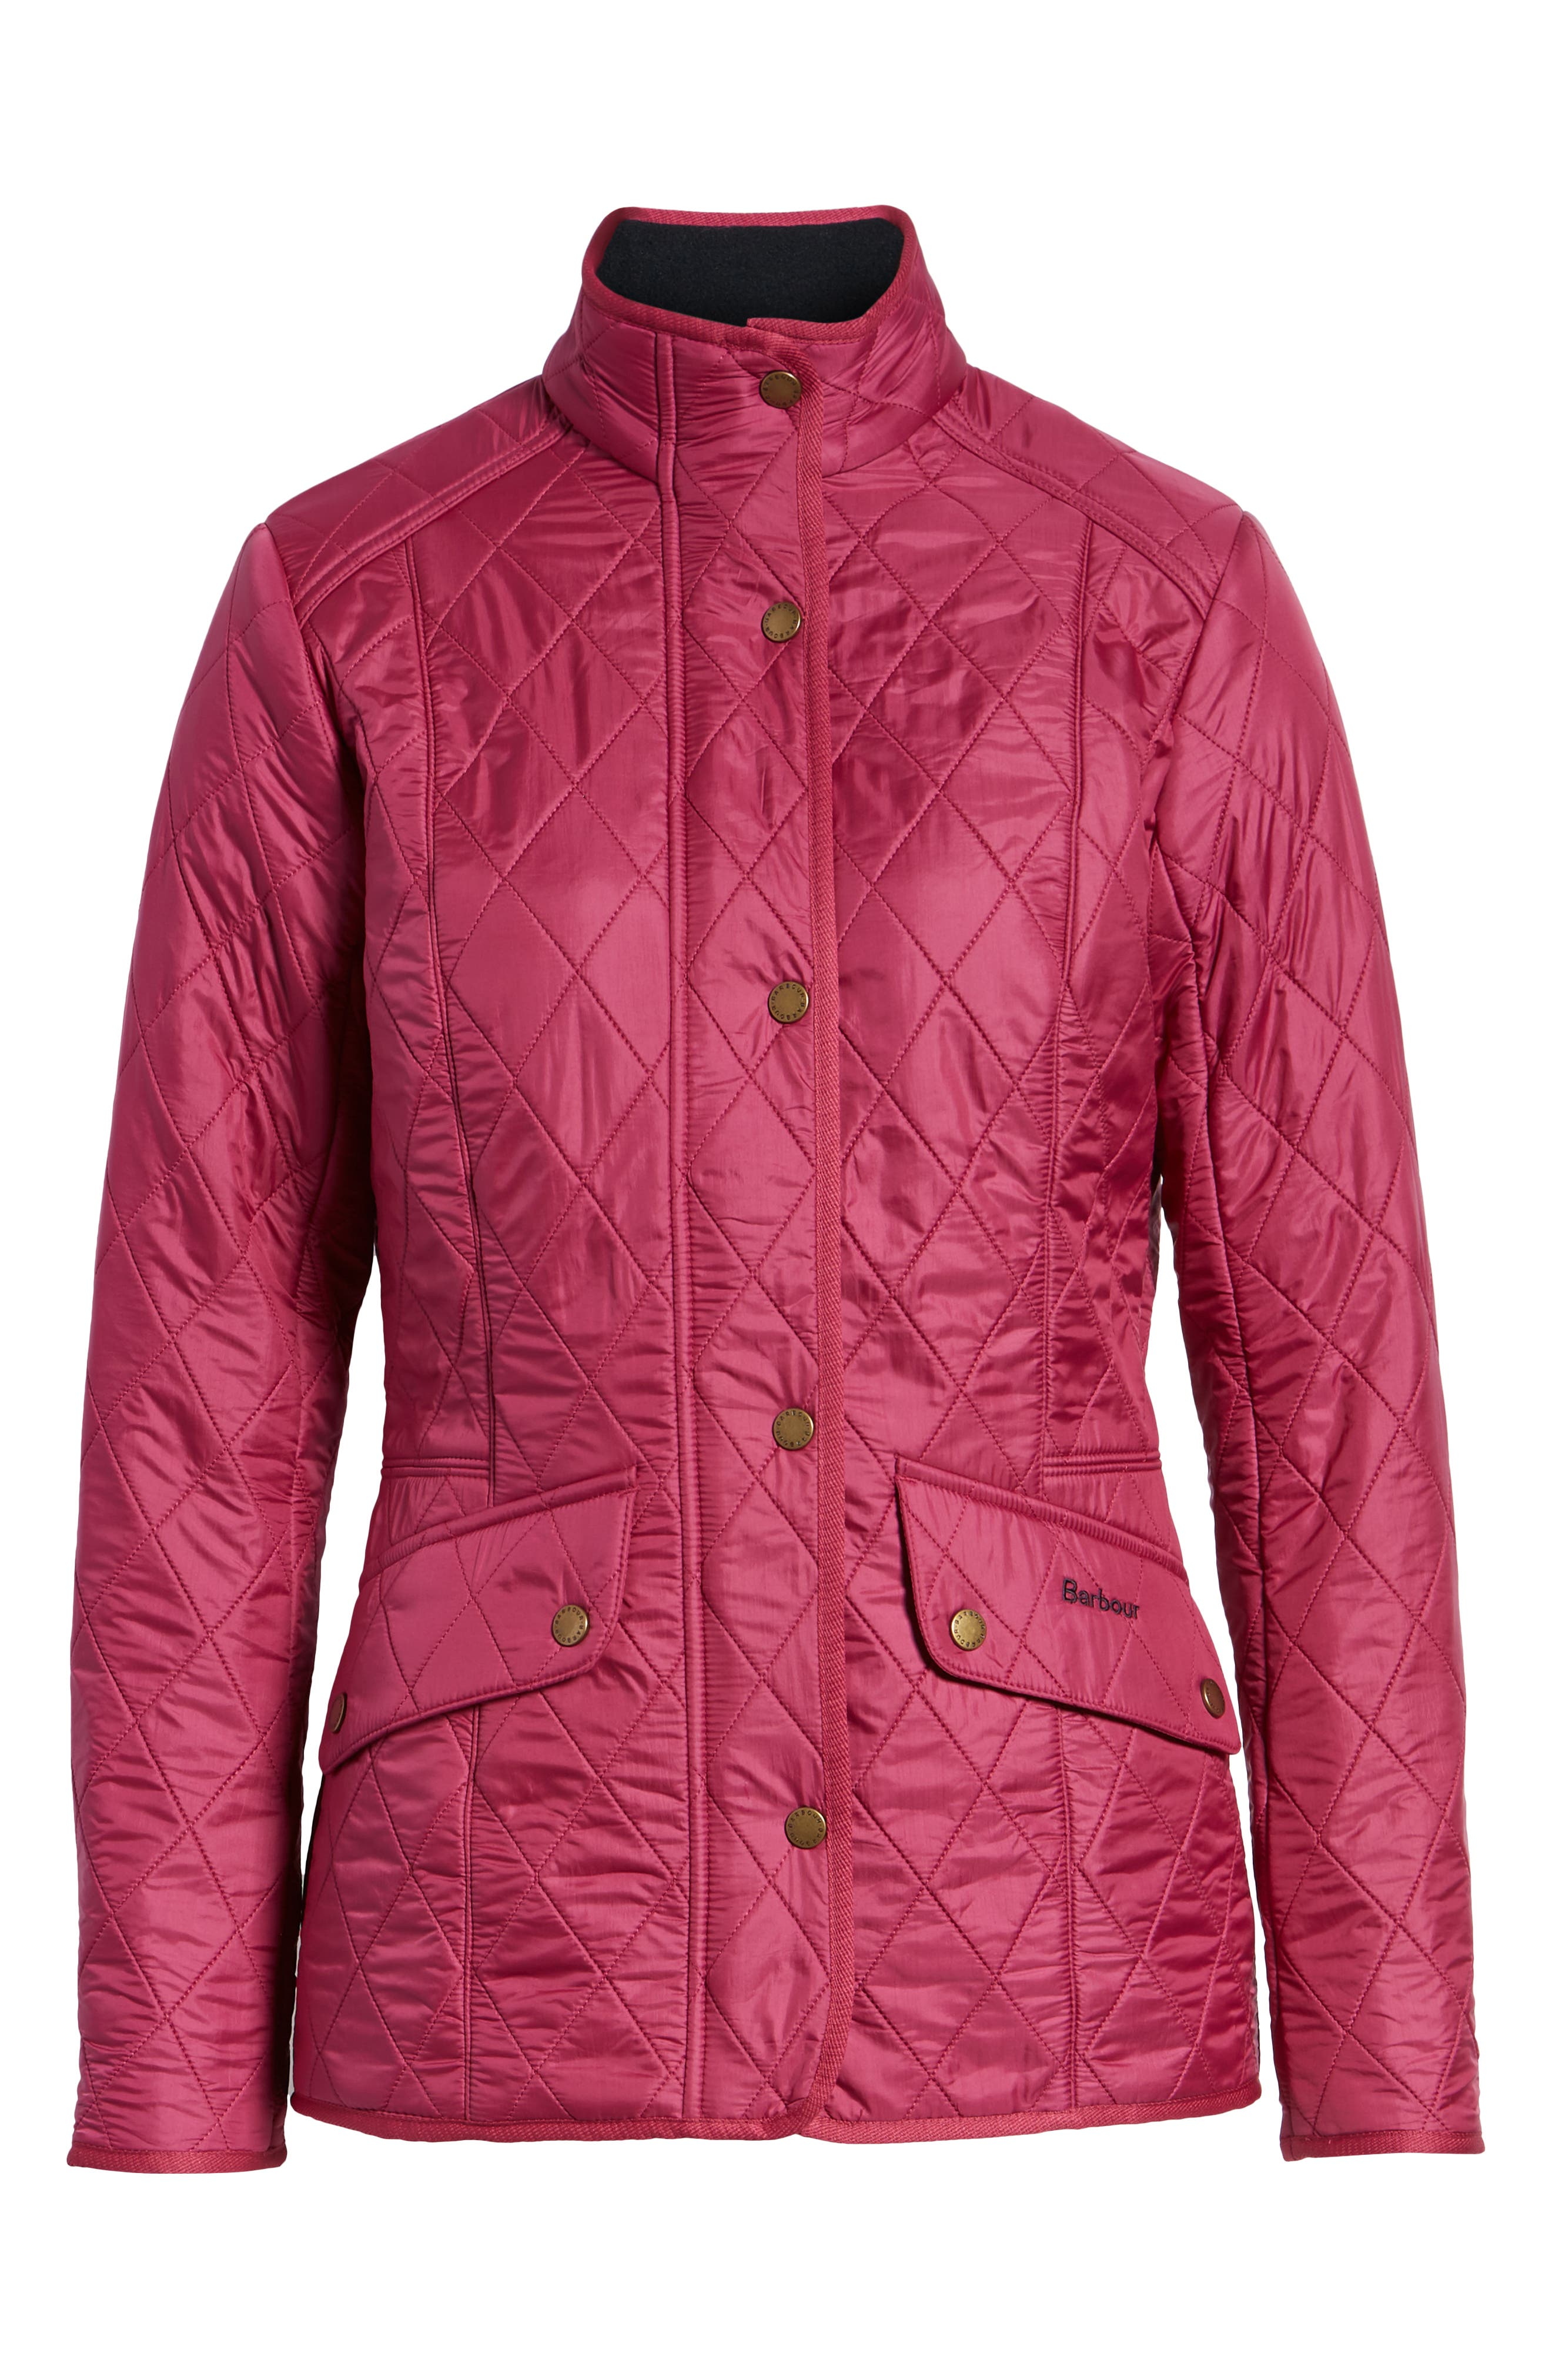 'Cavalry' Quilted Jacket,                             Alternate thumbnail 5, color,                             BERRY PINK / NAVY